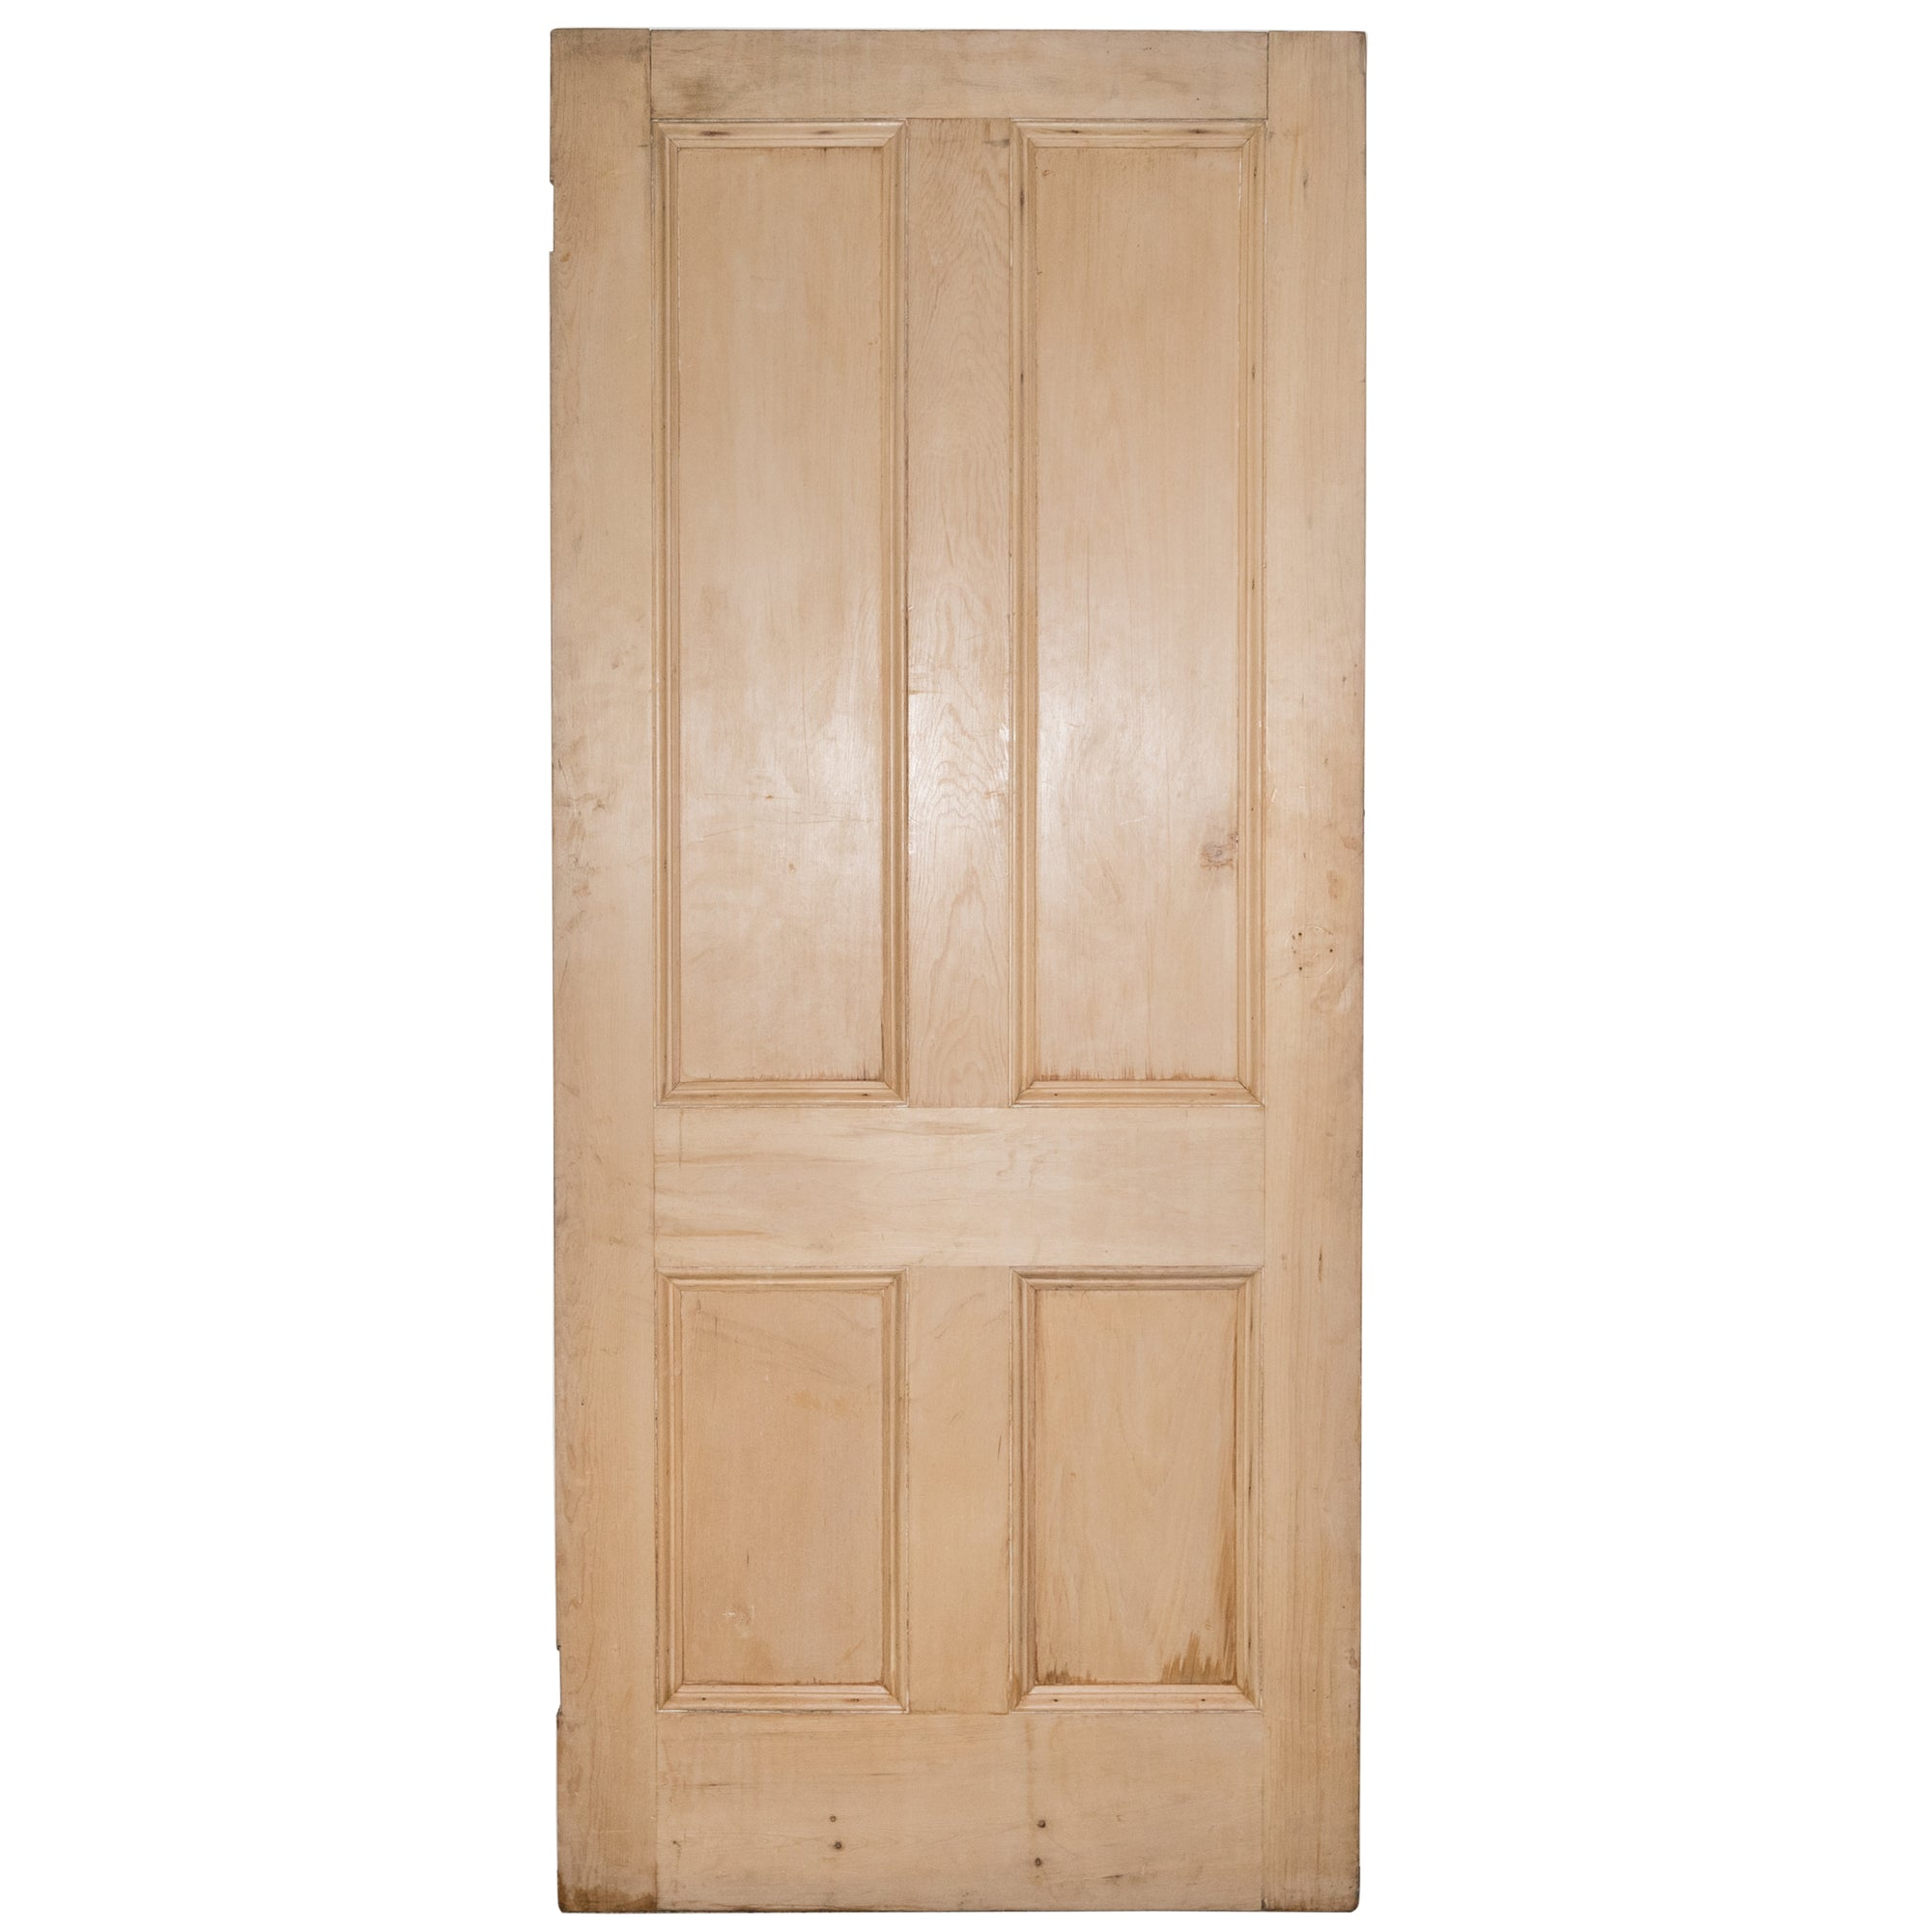 Solid Pine Four Panel Door Stripped - 212cm x 91.5cm - architectural-forum